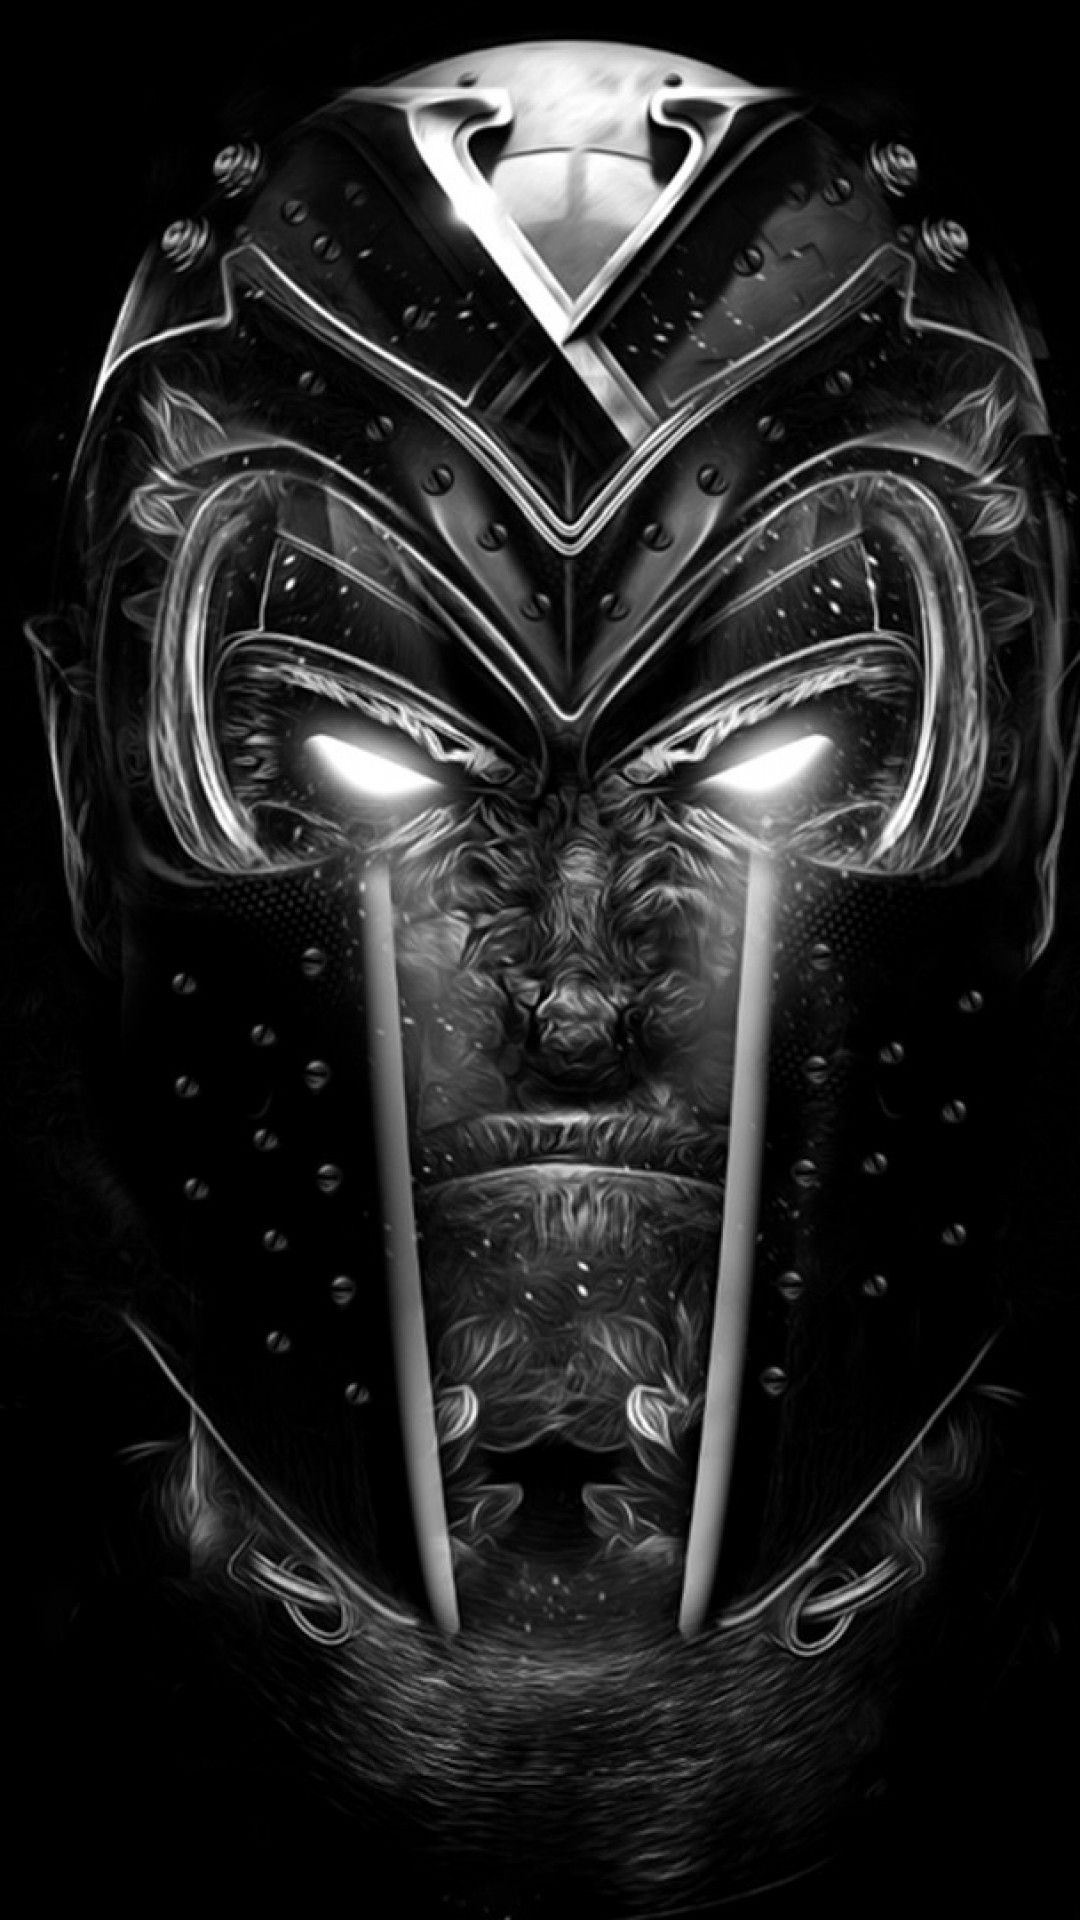 Magneto Iphone Wallpapers Top Free Magneto Iphone